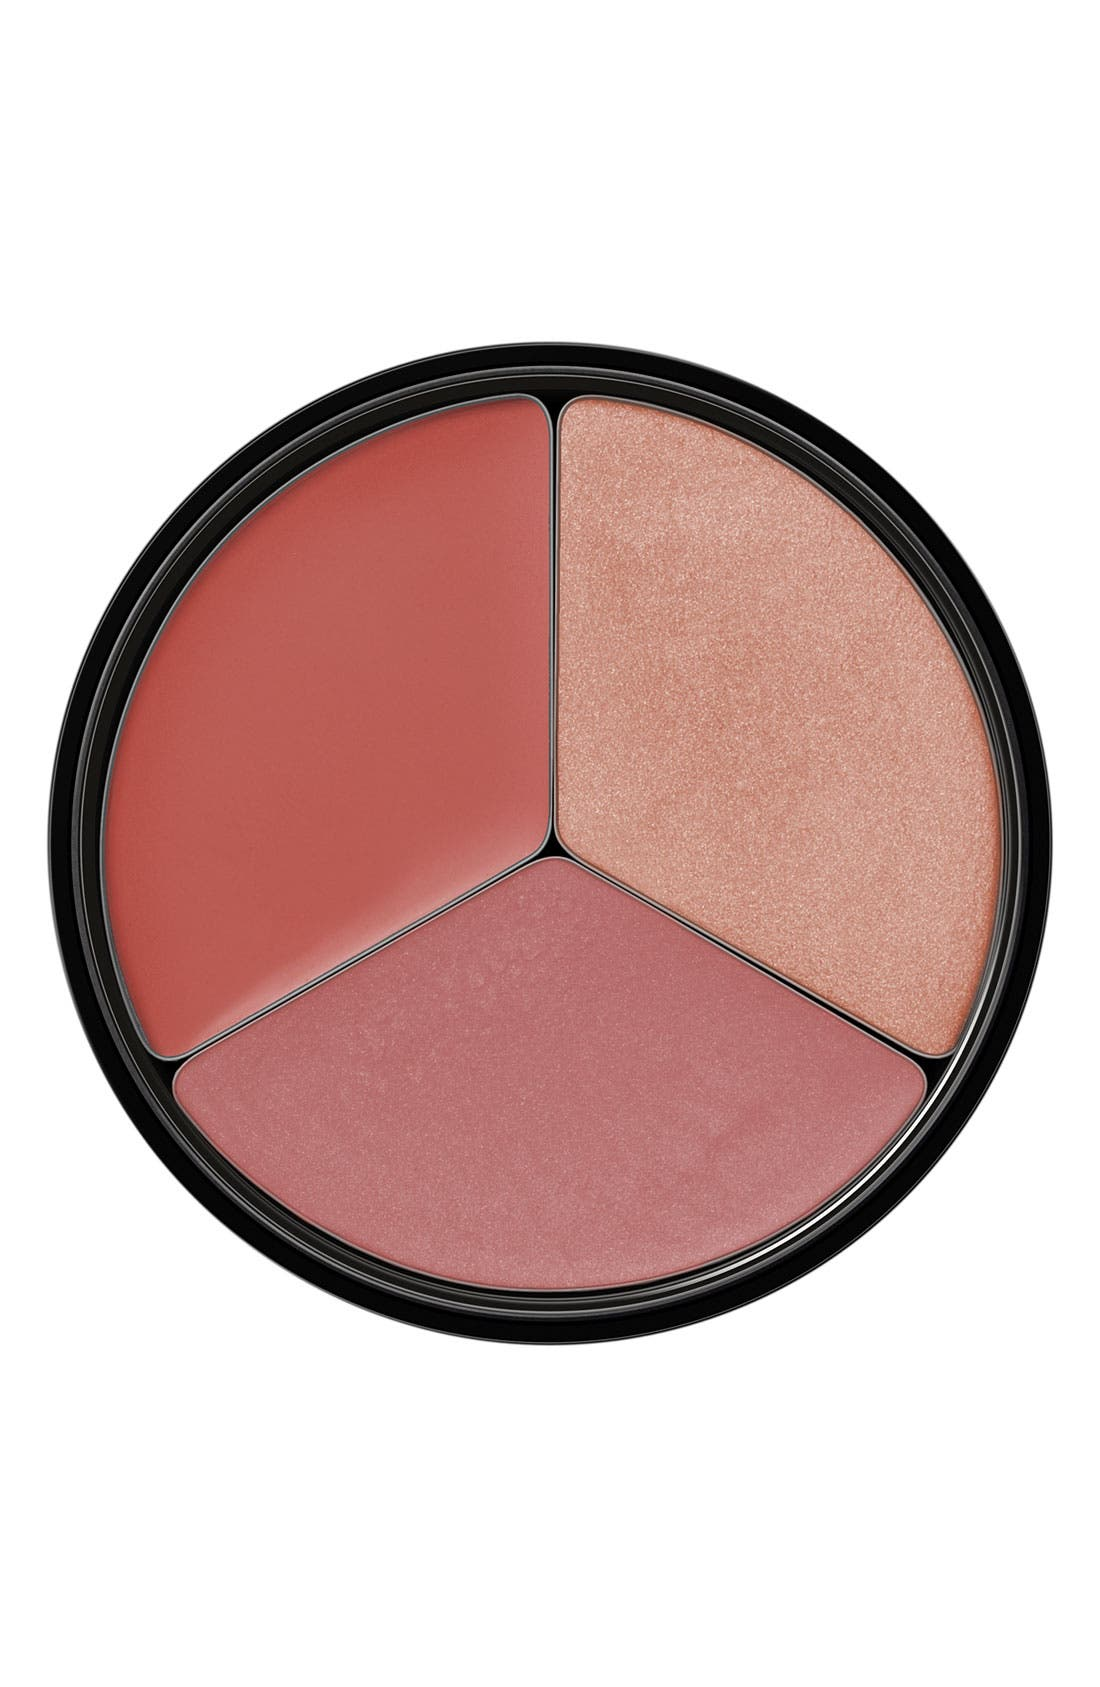 'Be Discovered - In Lights' Cream Blush Trio,                             Main thumbnail 1, color,                             833